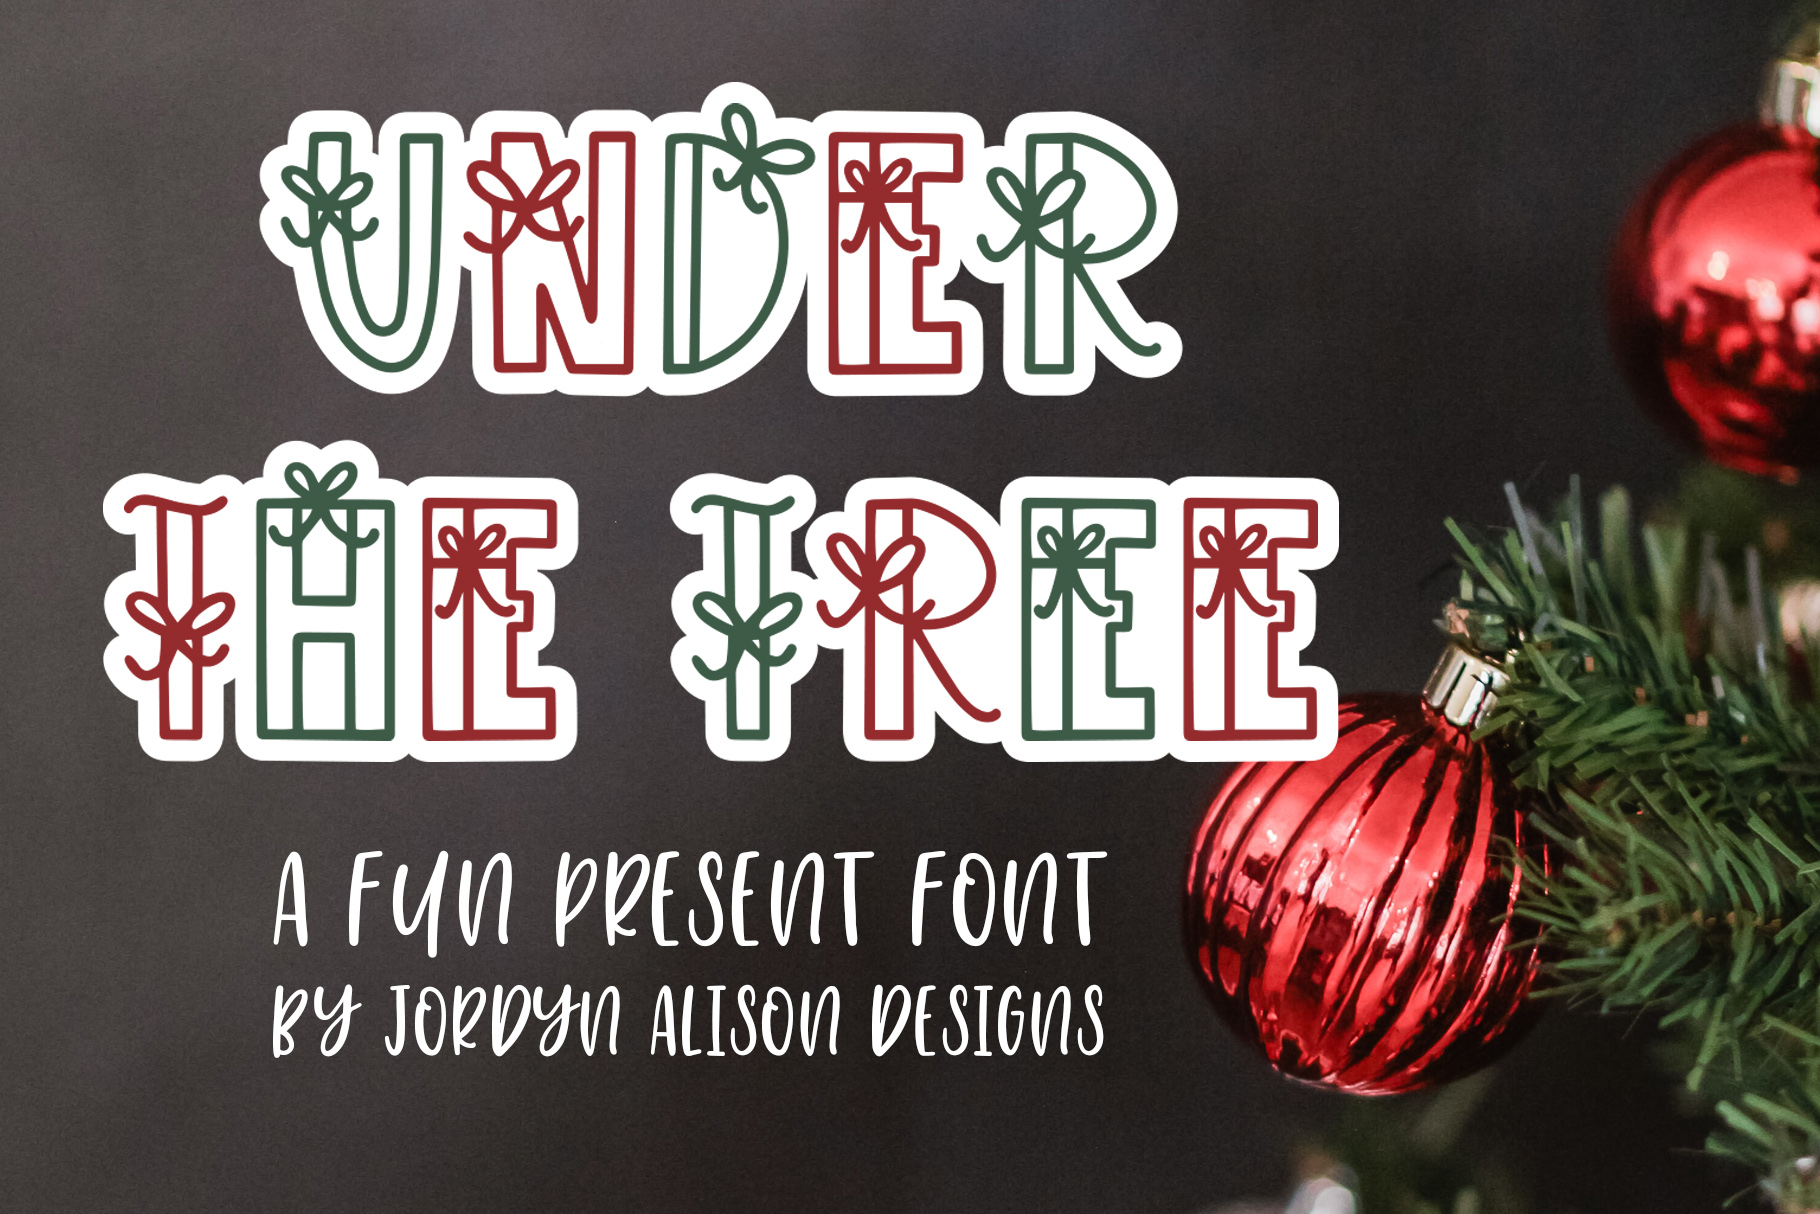 Download Free Under The Tree Font By Jordynalisondesigns Creative Fabrica for Cricut Explore, Silhouette and other cutting machines.